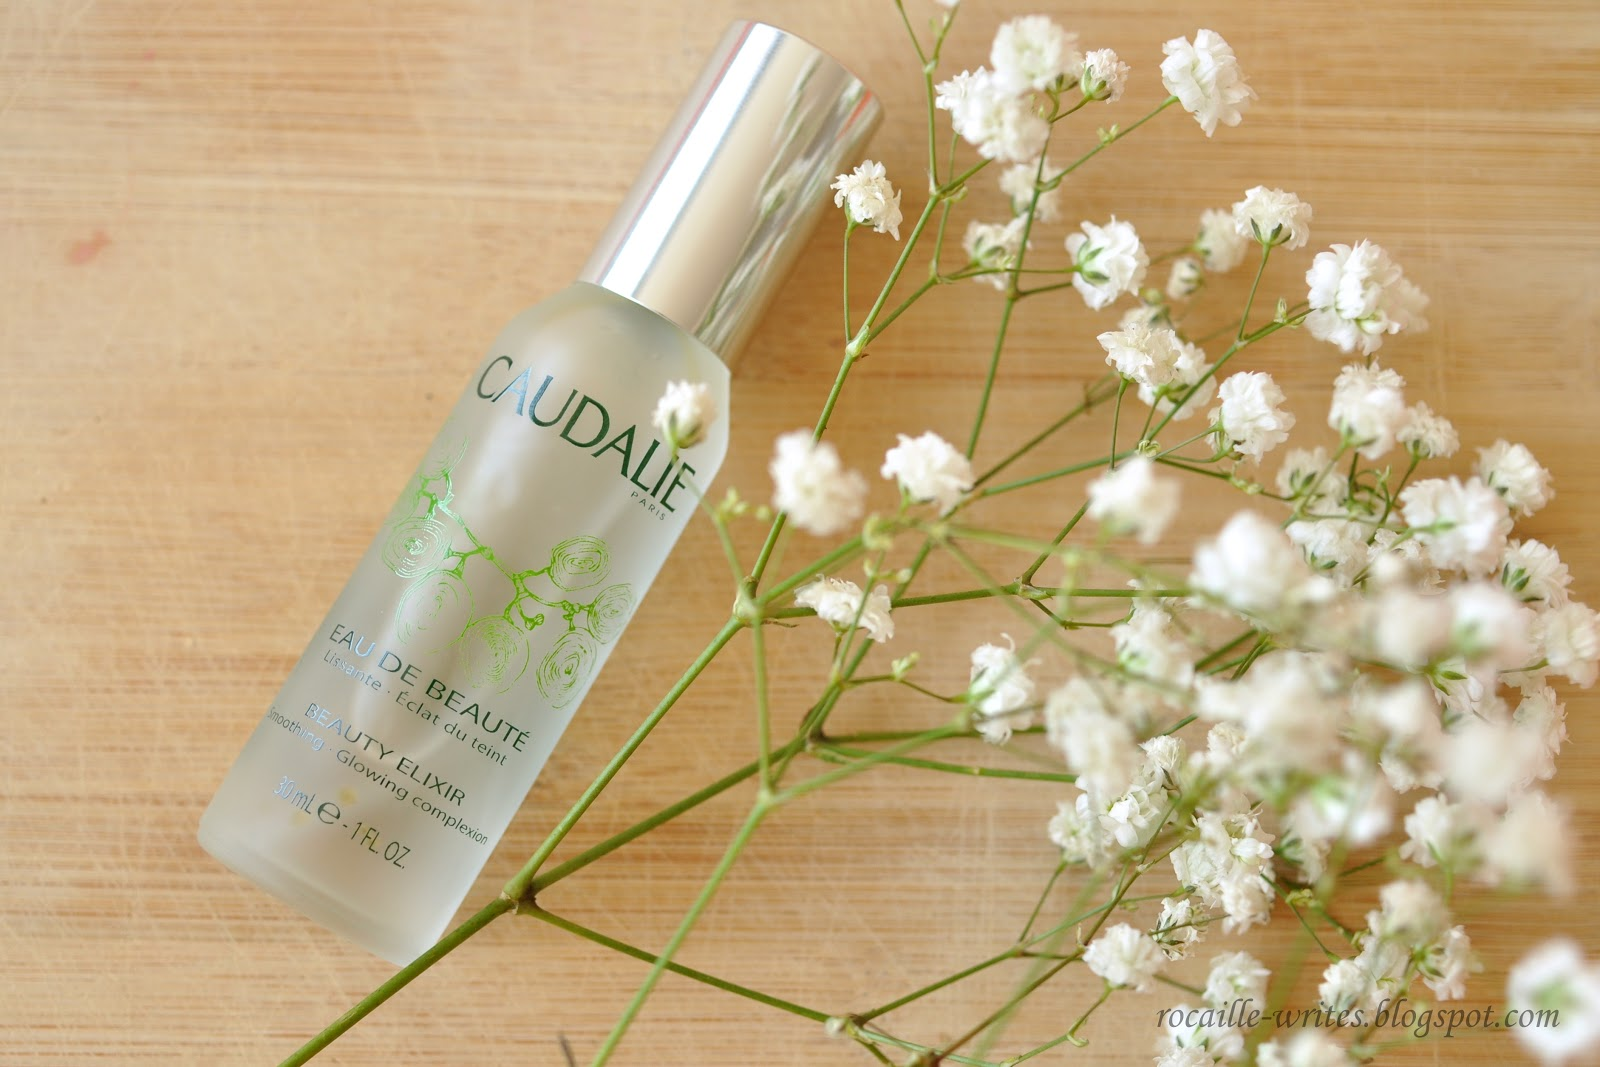 Cult Classics: Caudalie Beauty Elixir Review